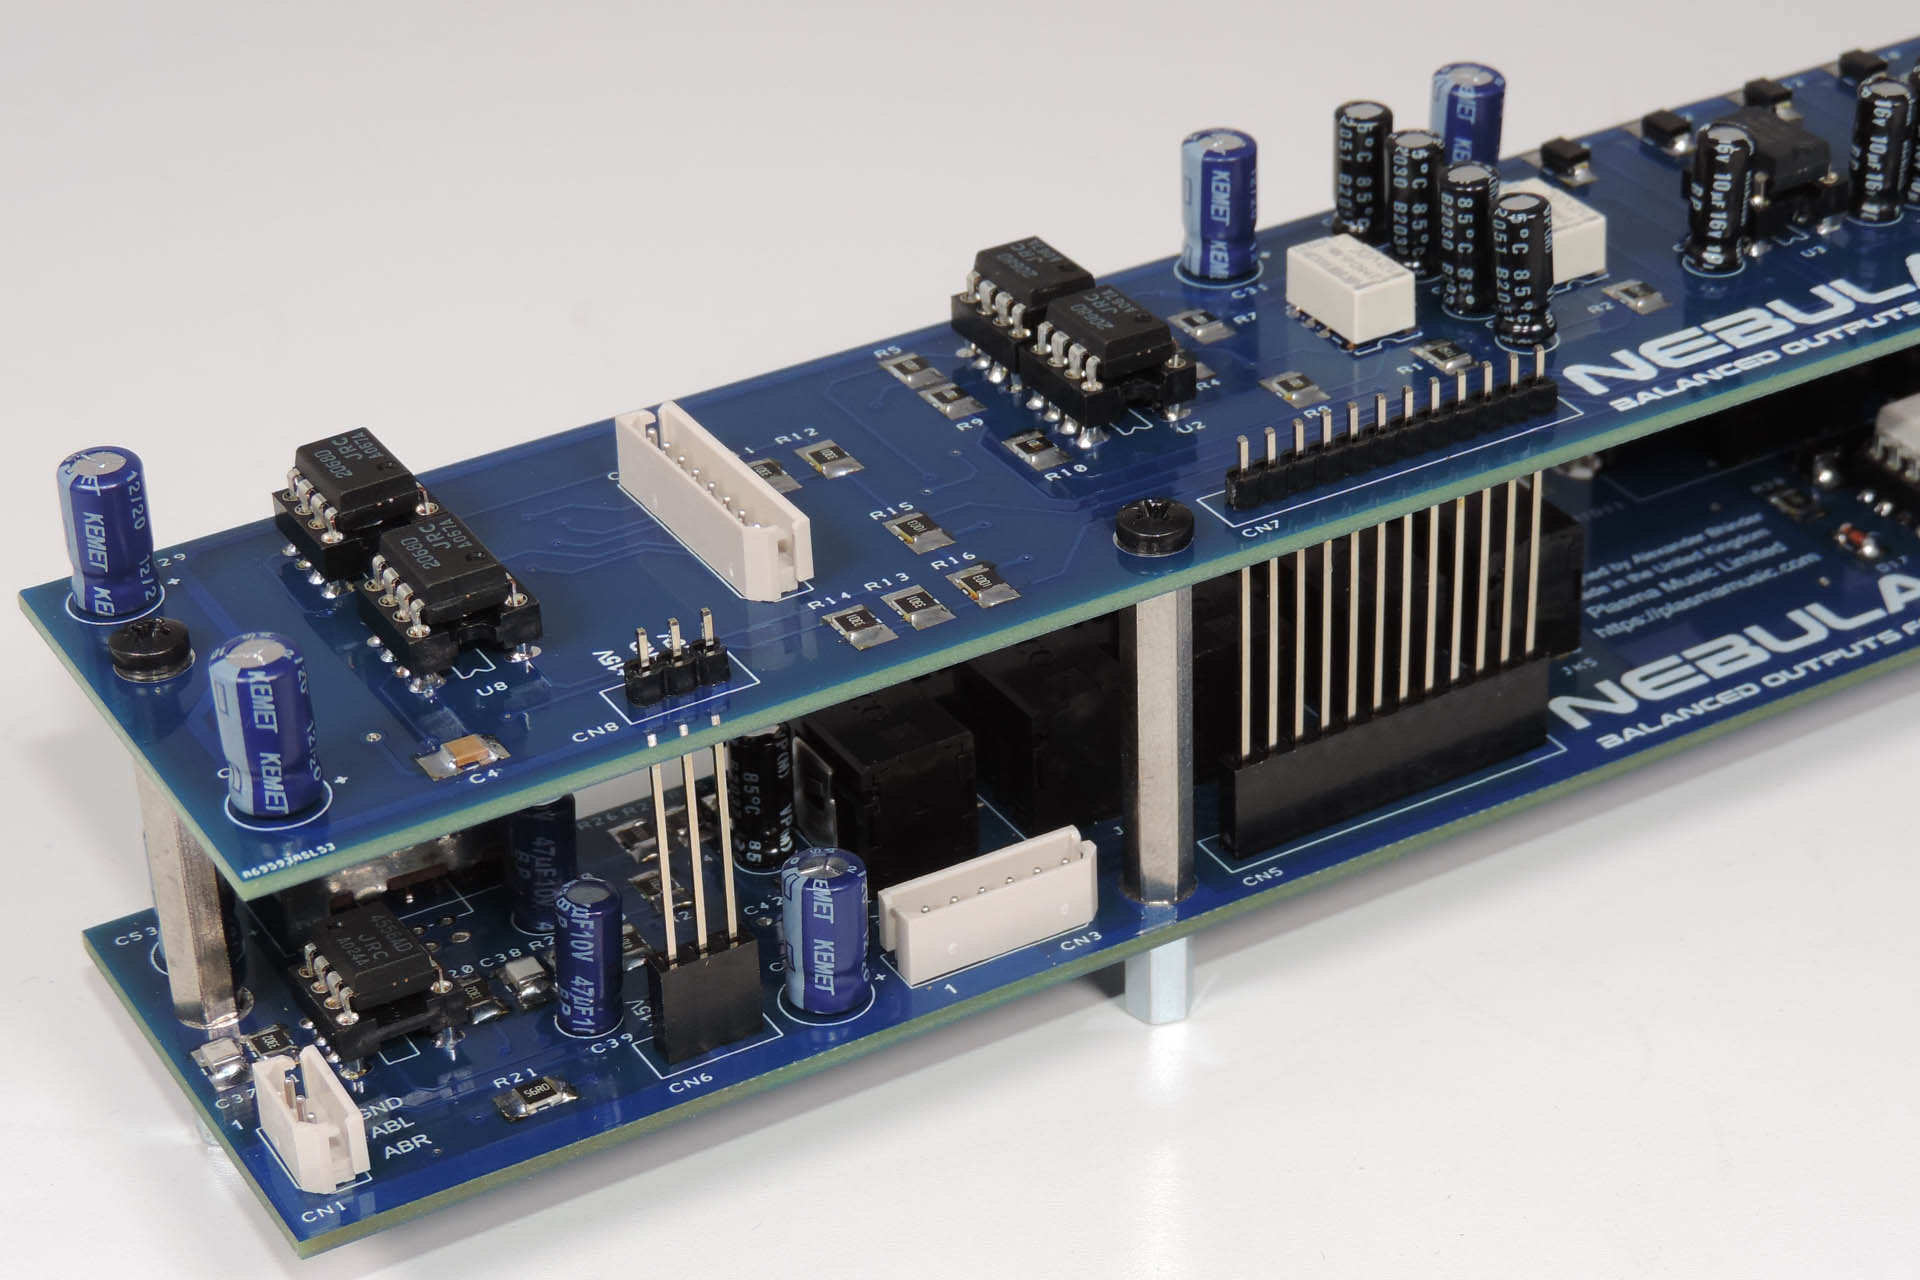 Nebula balanced outputs for the Roland MKS-70 inter-board connectors are solder with boards assembled for perfect alignment